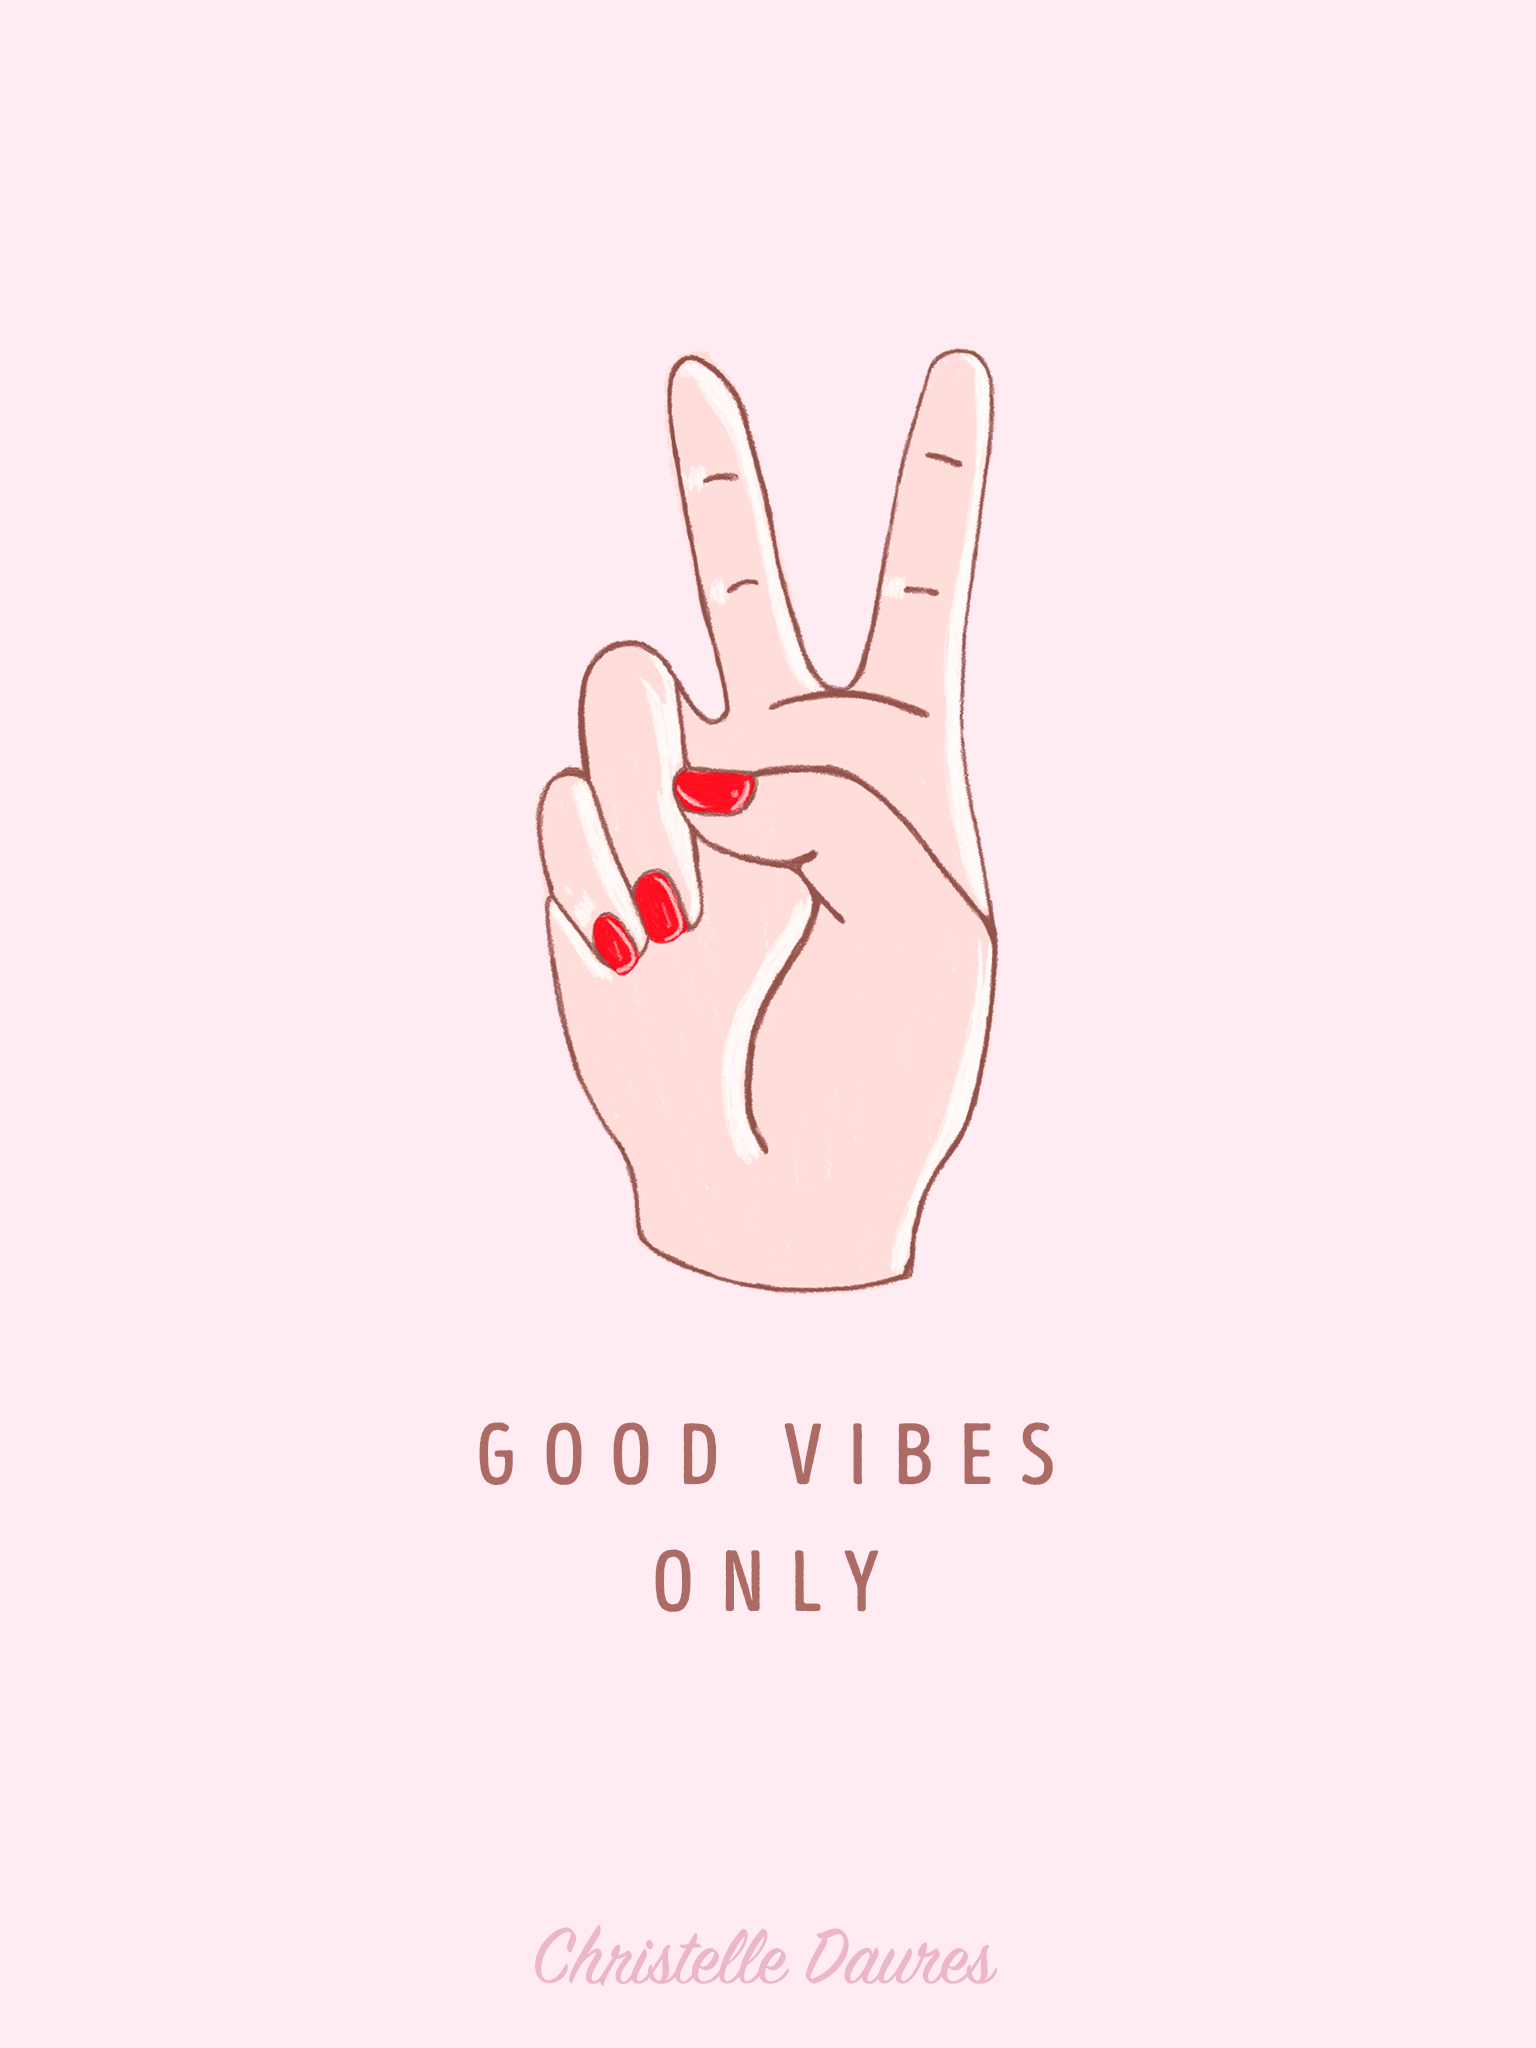 ipad-good-vibes-only-wallpaper-fond-ecran-dessin-pins